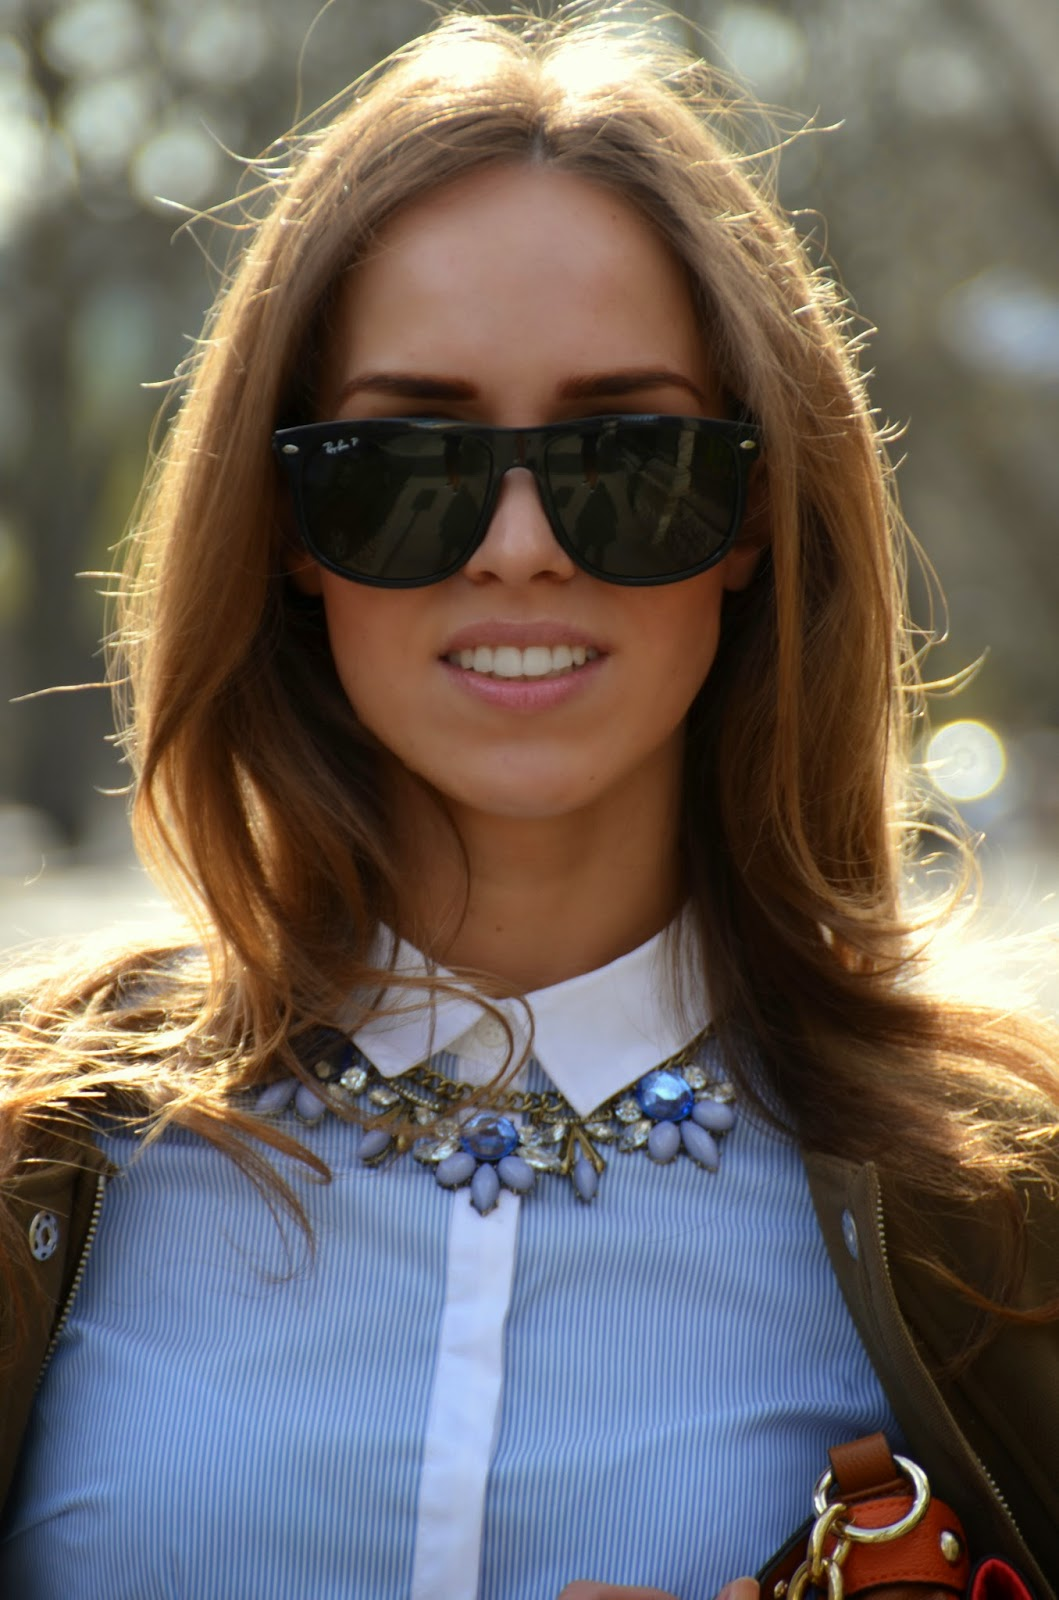 hm-striped-blue-shirt-monton-statement-necklace-ray-ban-sunglasses